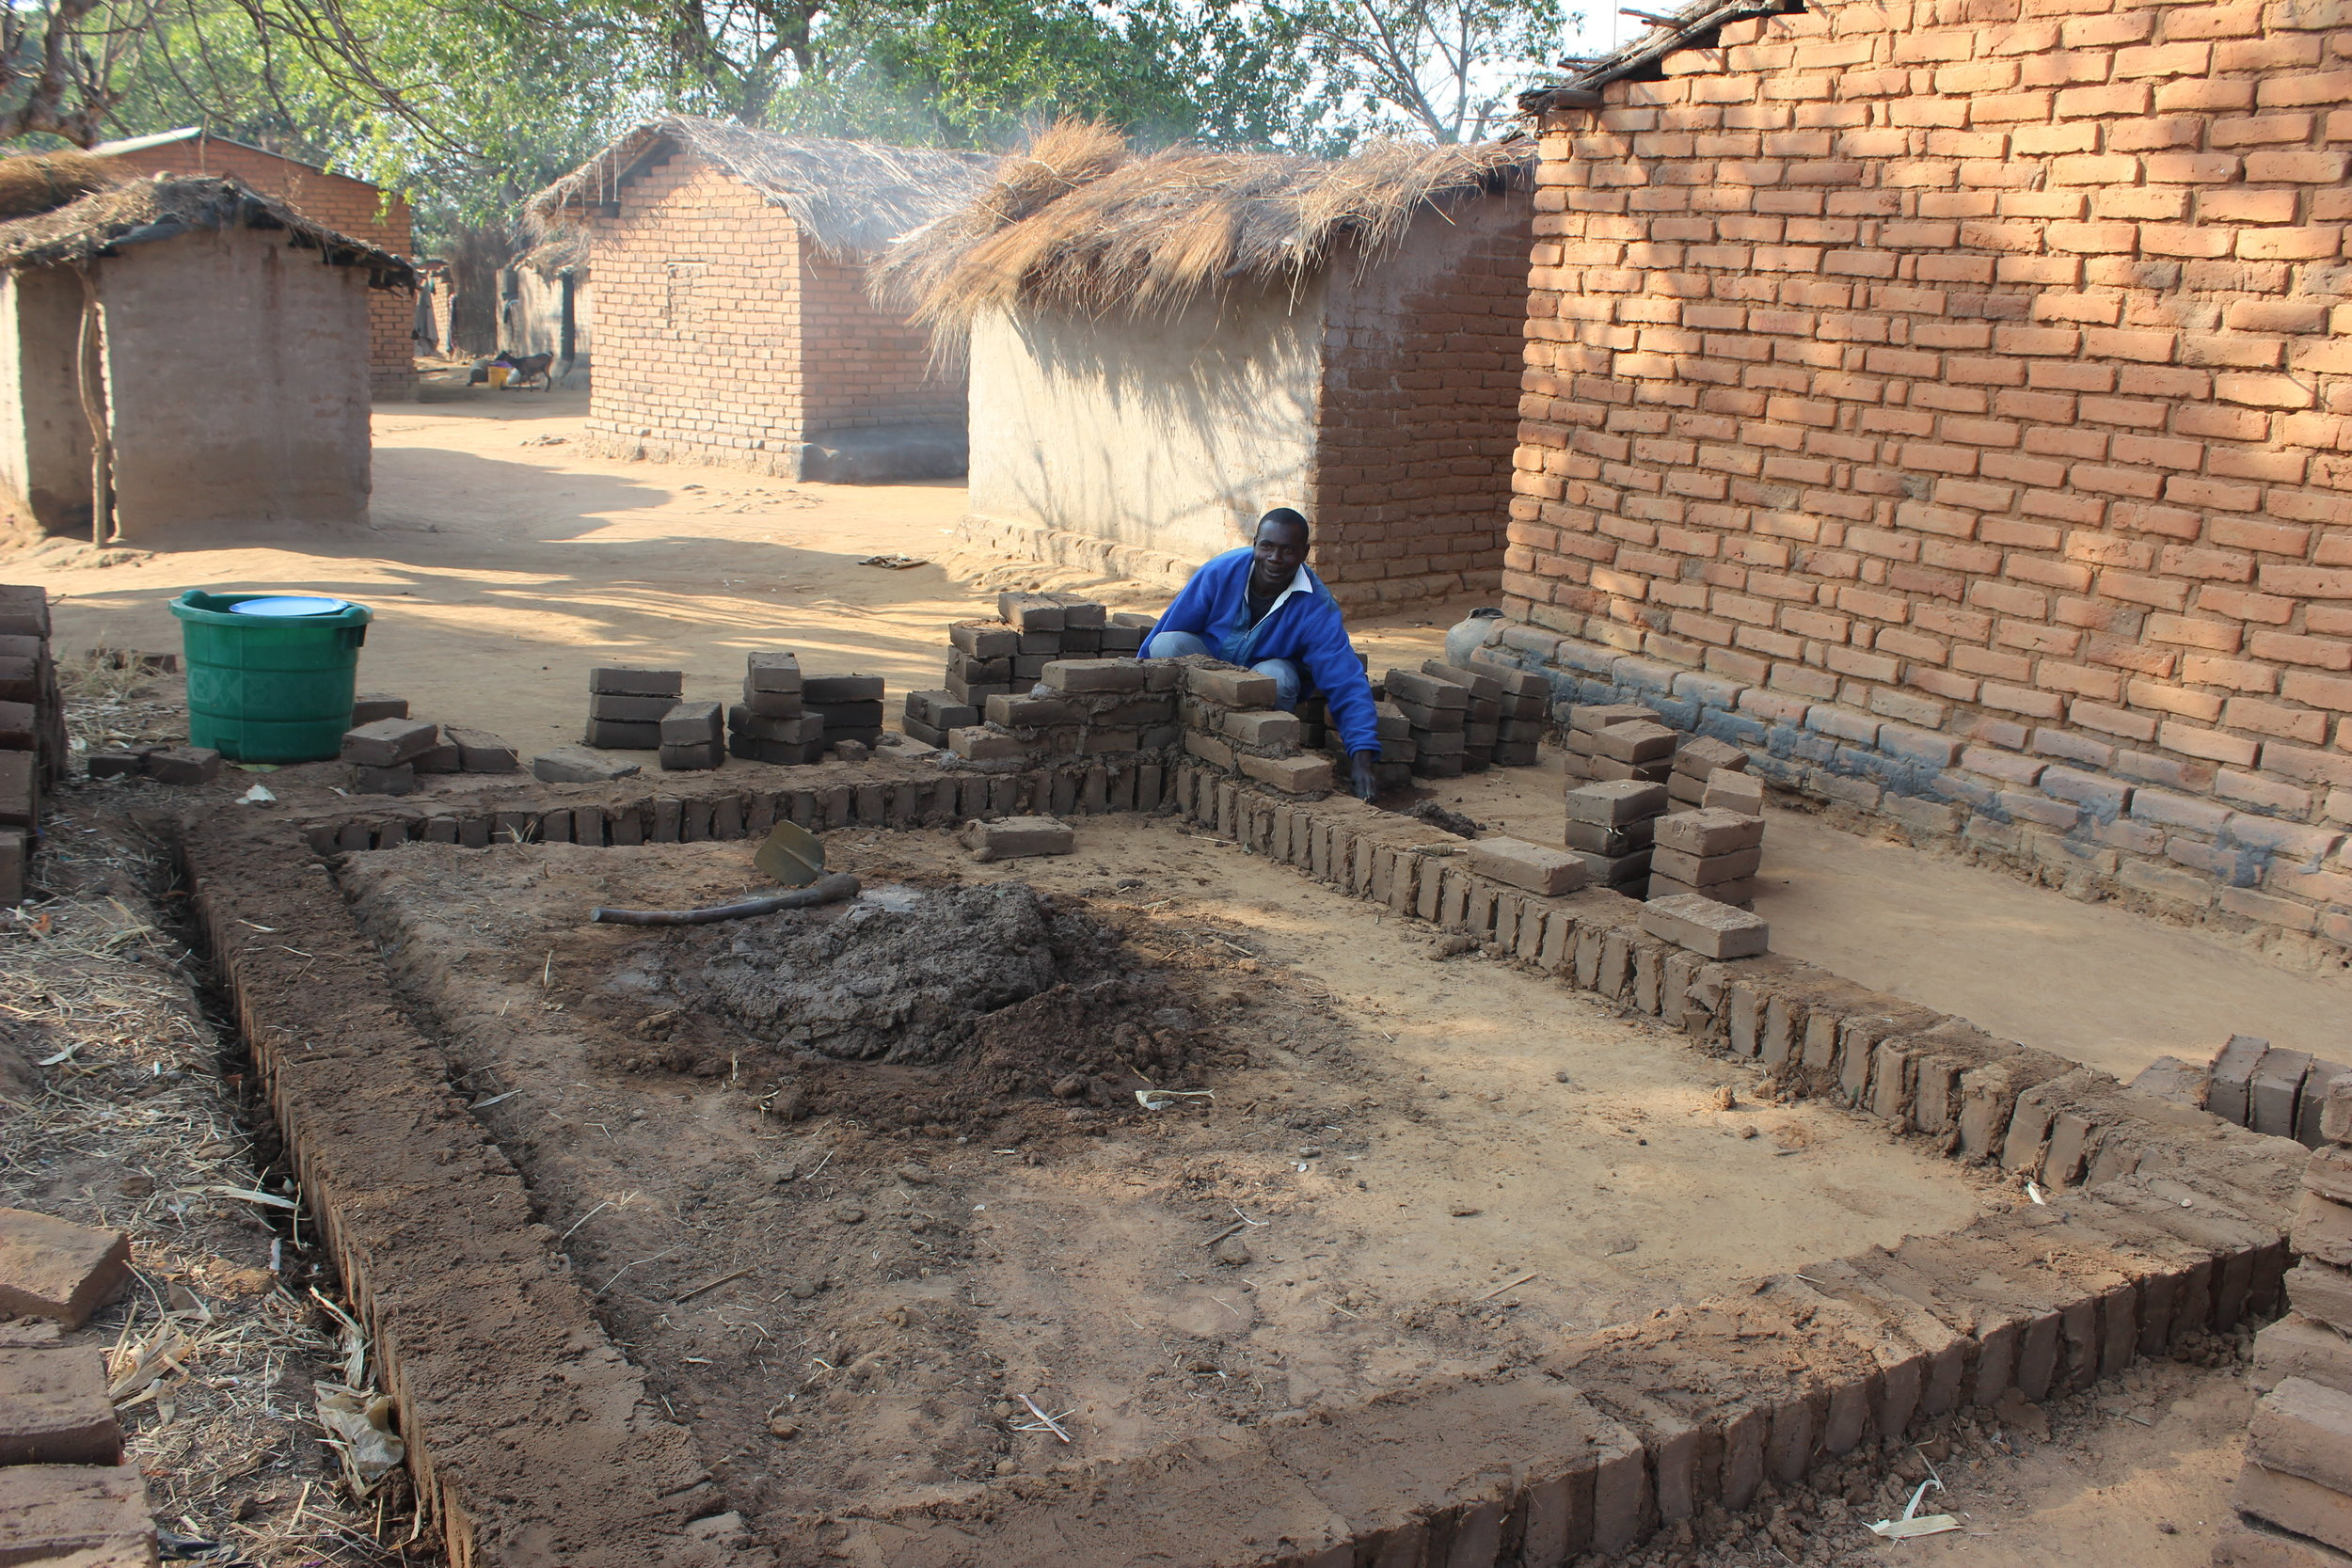 A Malawian father builds a new house for his family. Photo Credit: Karen Roller 07/17